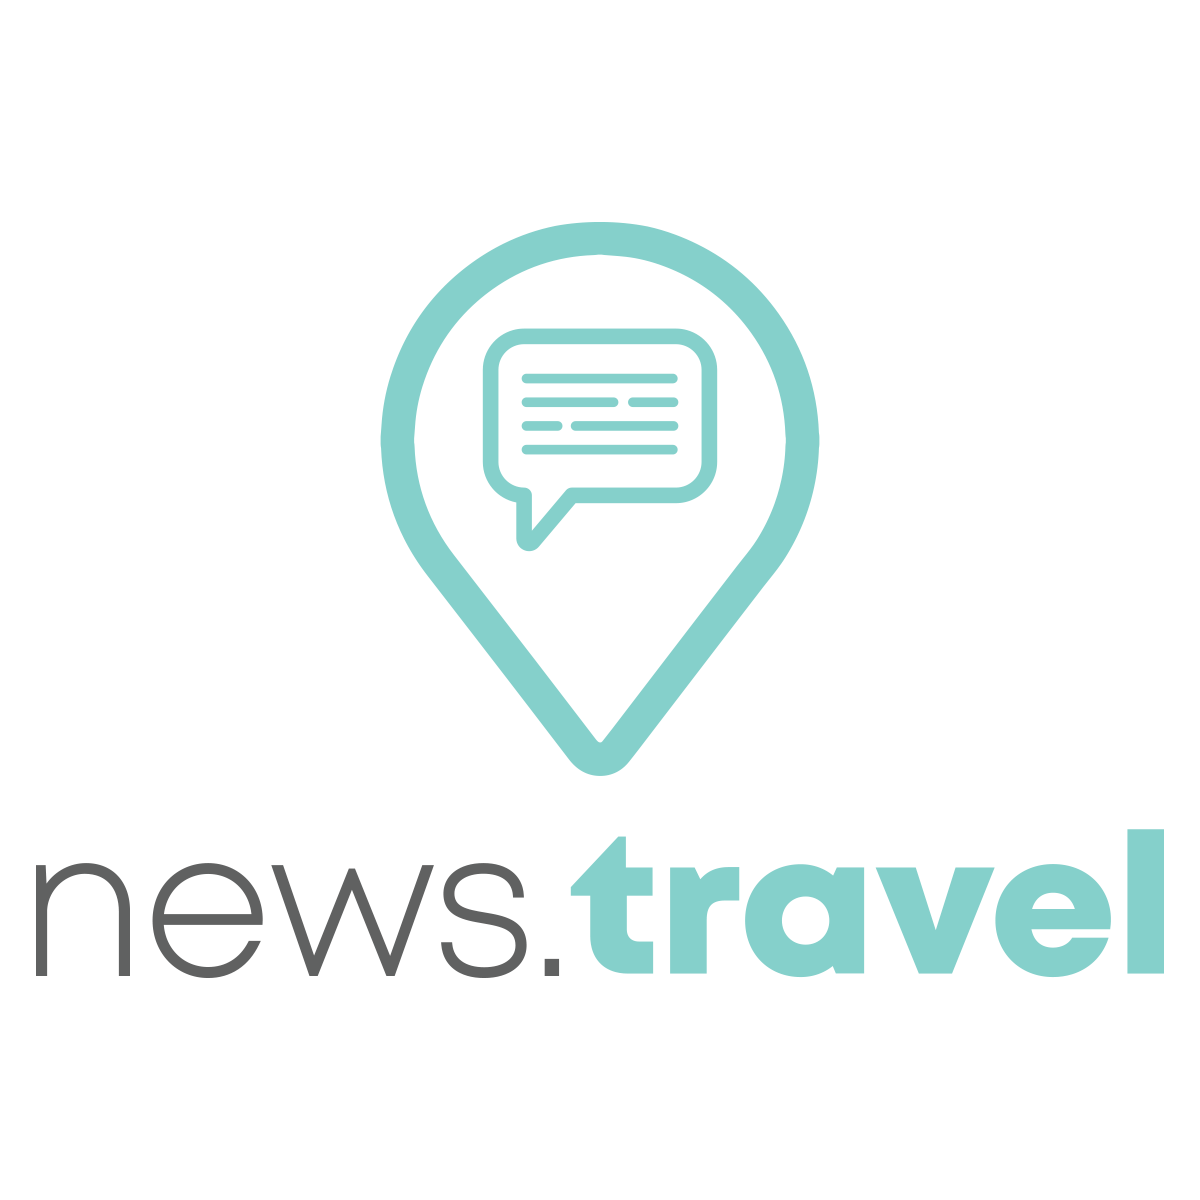 Thanks for your help with NEWS.TRAVEL logo!